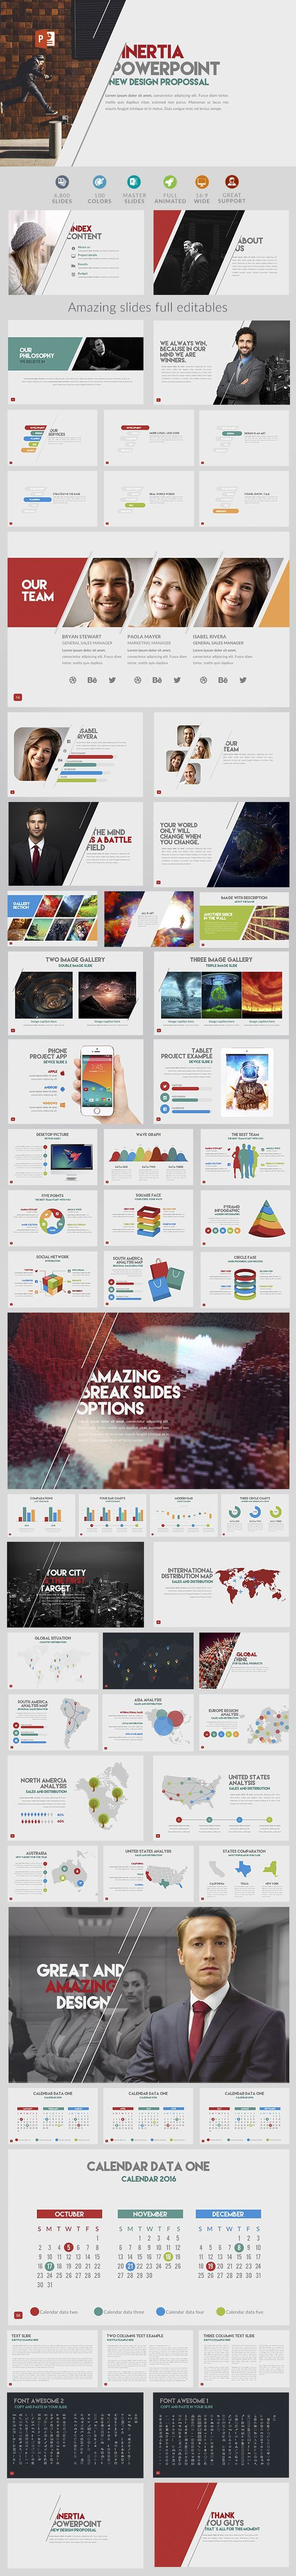 Inertia | Powerpoint Presentation Template #slides Download: http://graphicriver.net/item/inertia-powerpoint-presentation/14545750?ref=ksioks: